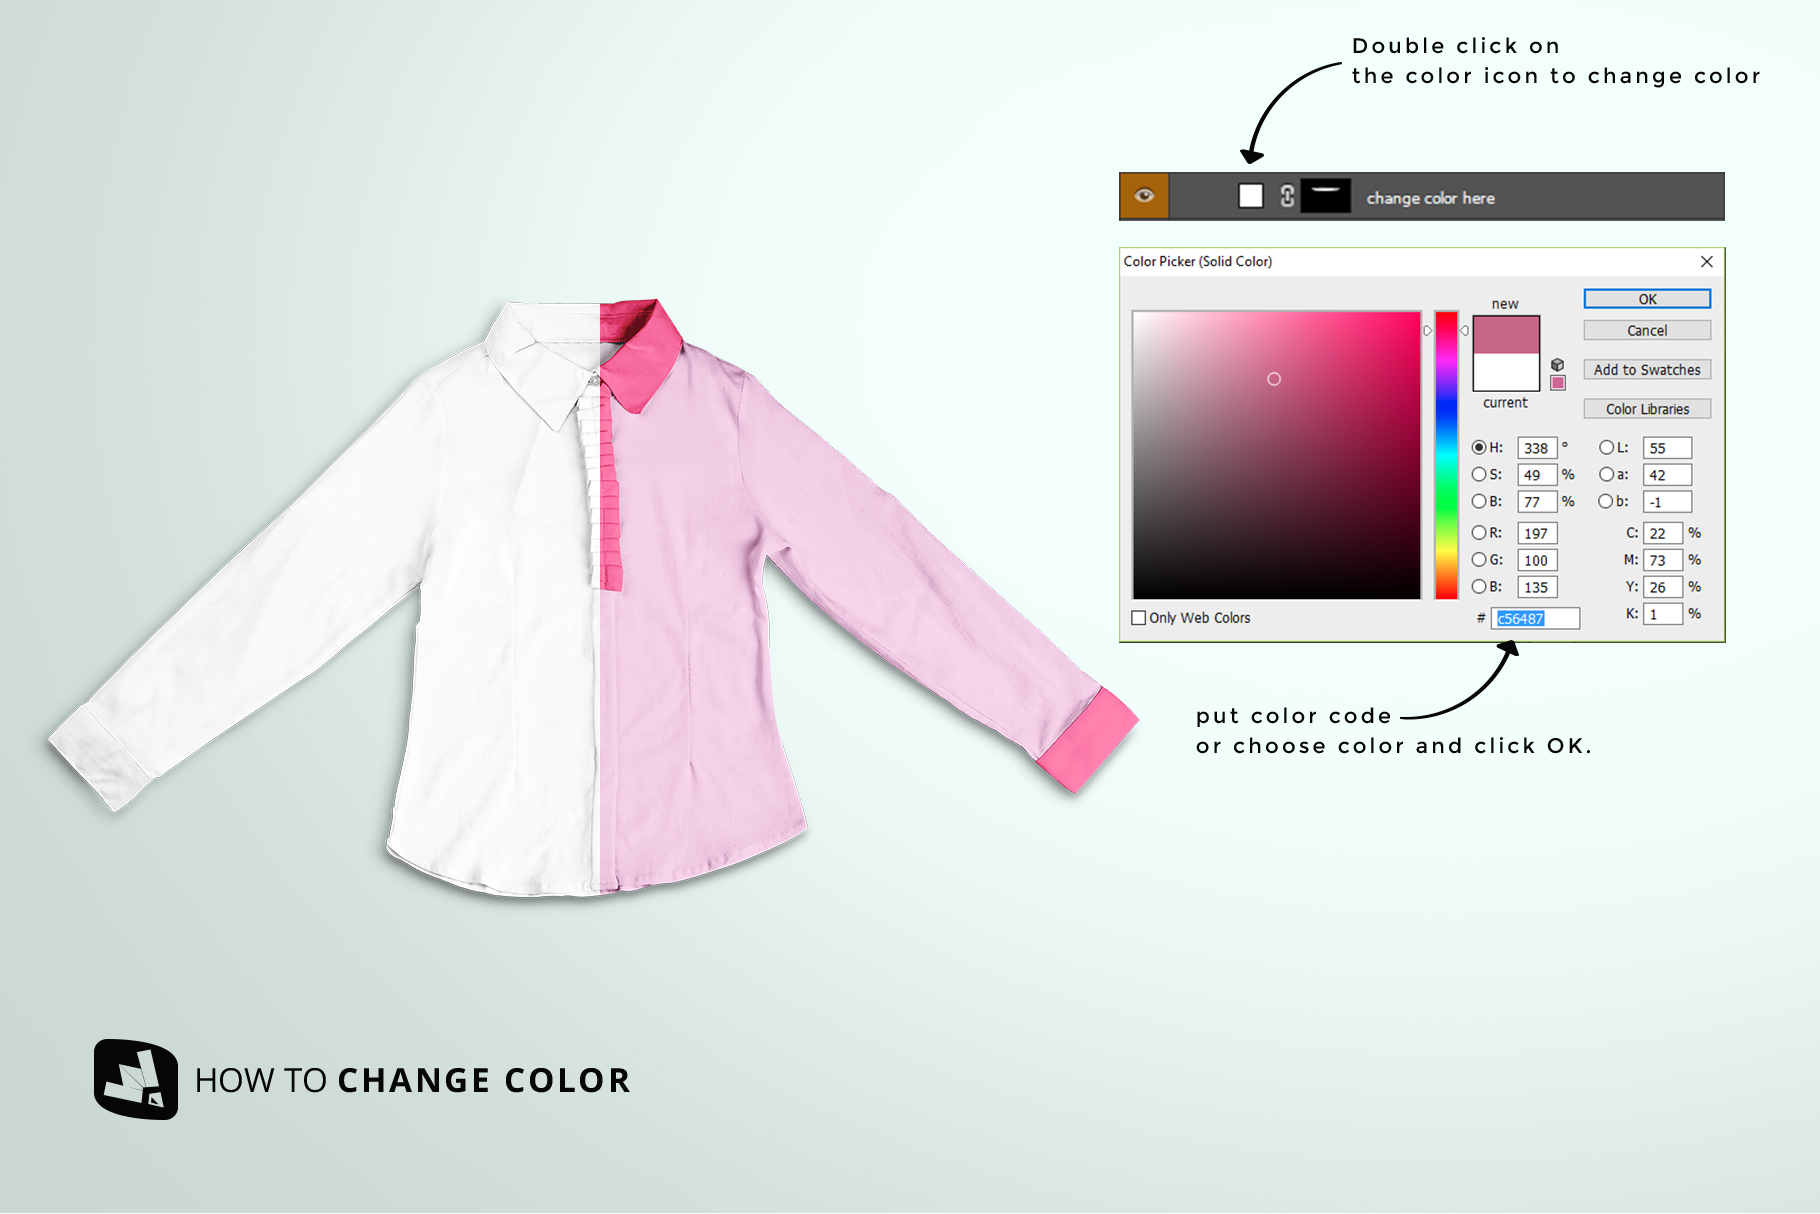 how to change color of the women's full sleeve blouse mockup